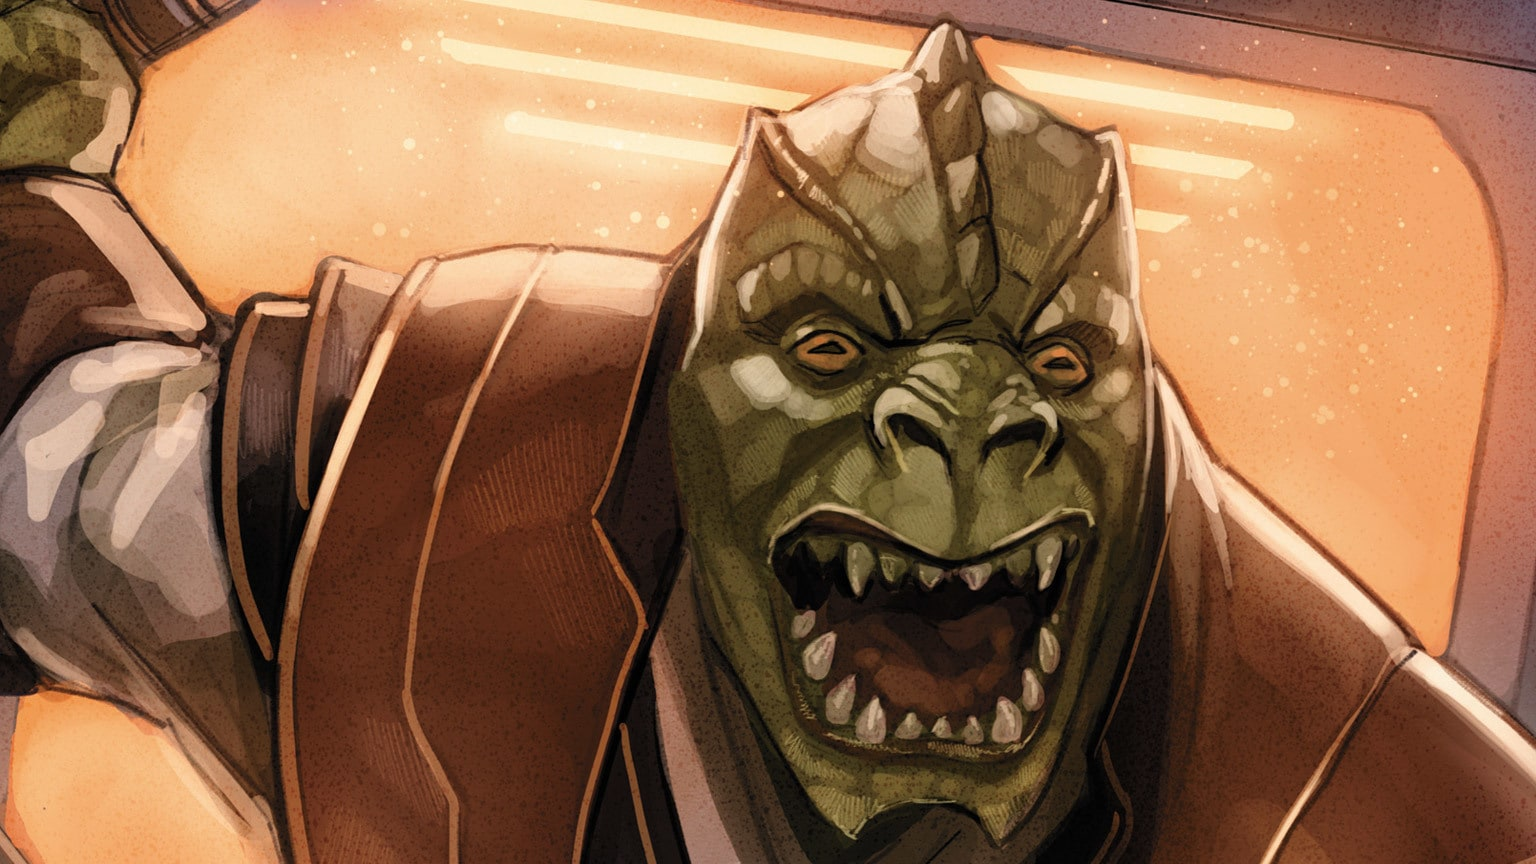 Jedi Master Sskeer Returns in Marvel's Star Wars: The High Republic #2 – Exclusive Preview